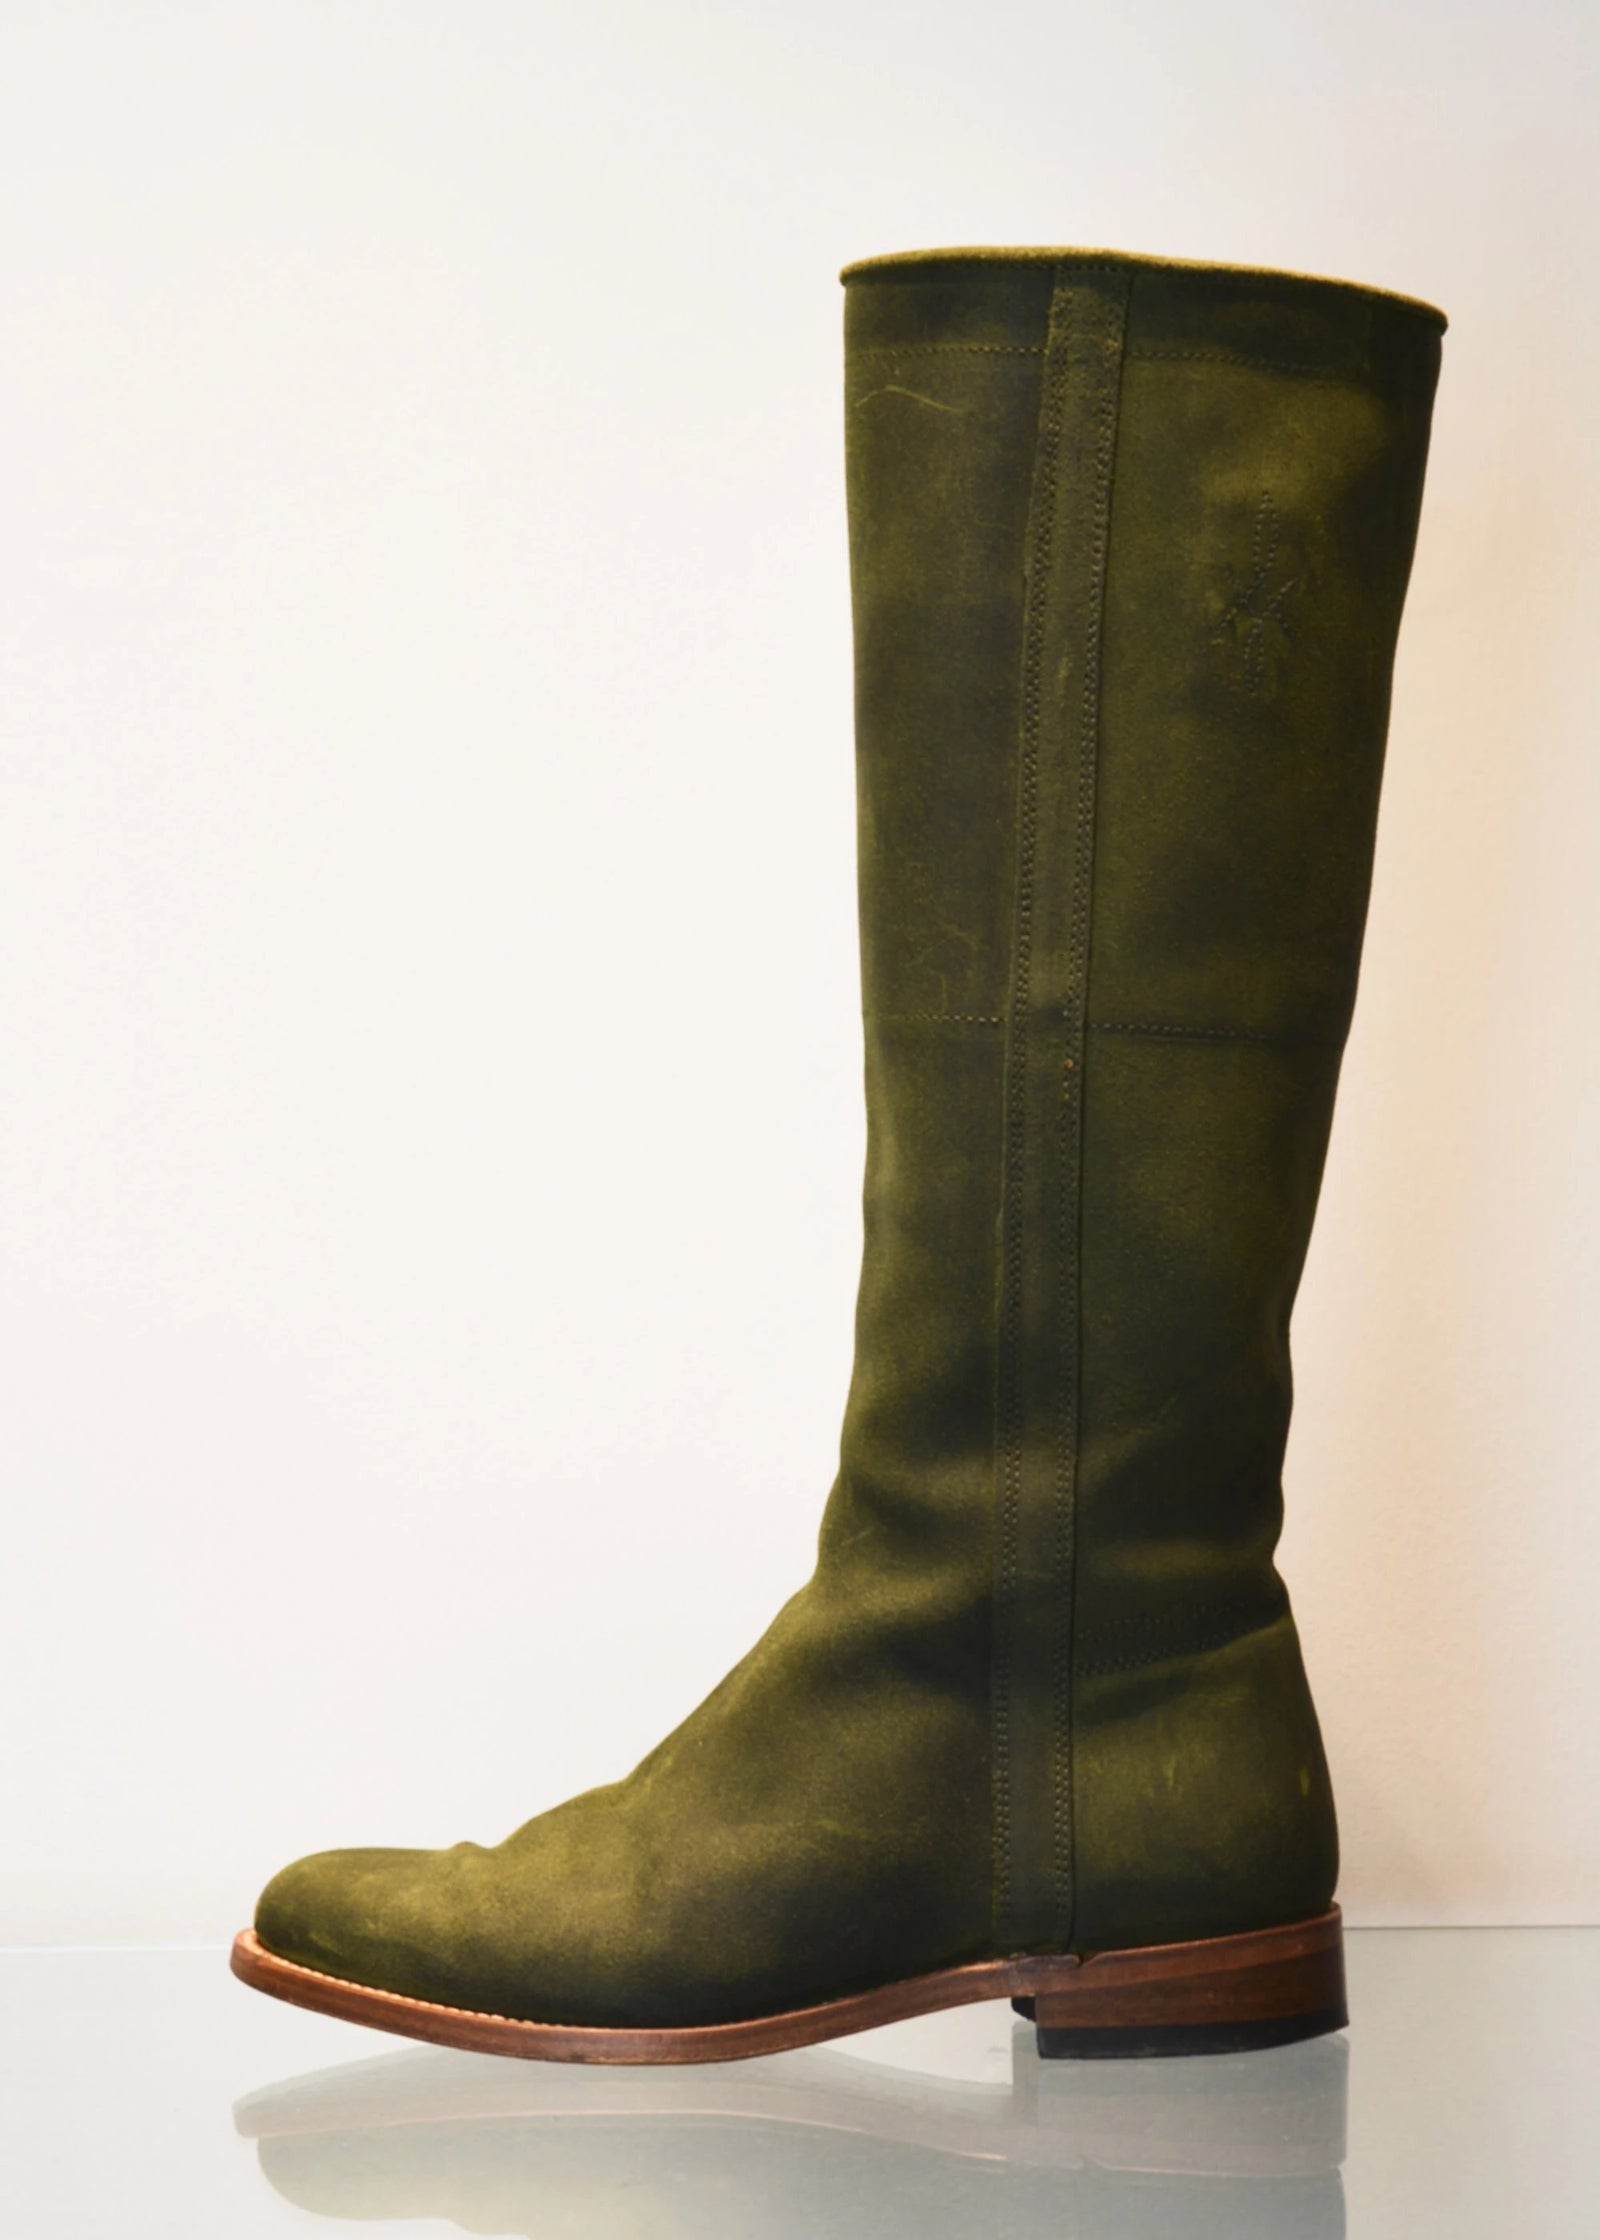 PREWORN | Preloved - 'EL ESTRIBO' Country Boot - Size 6 UK (39)